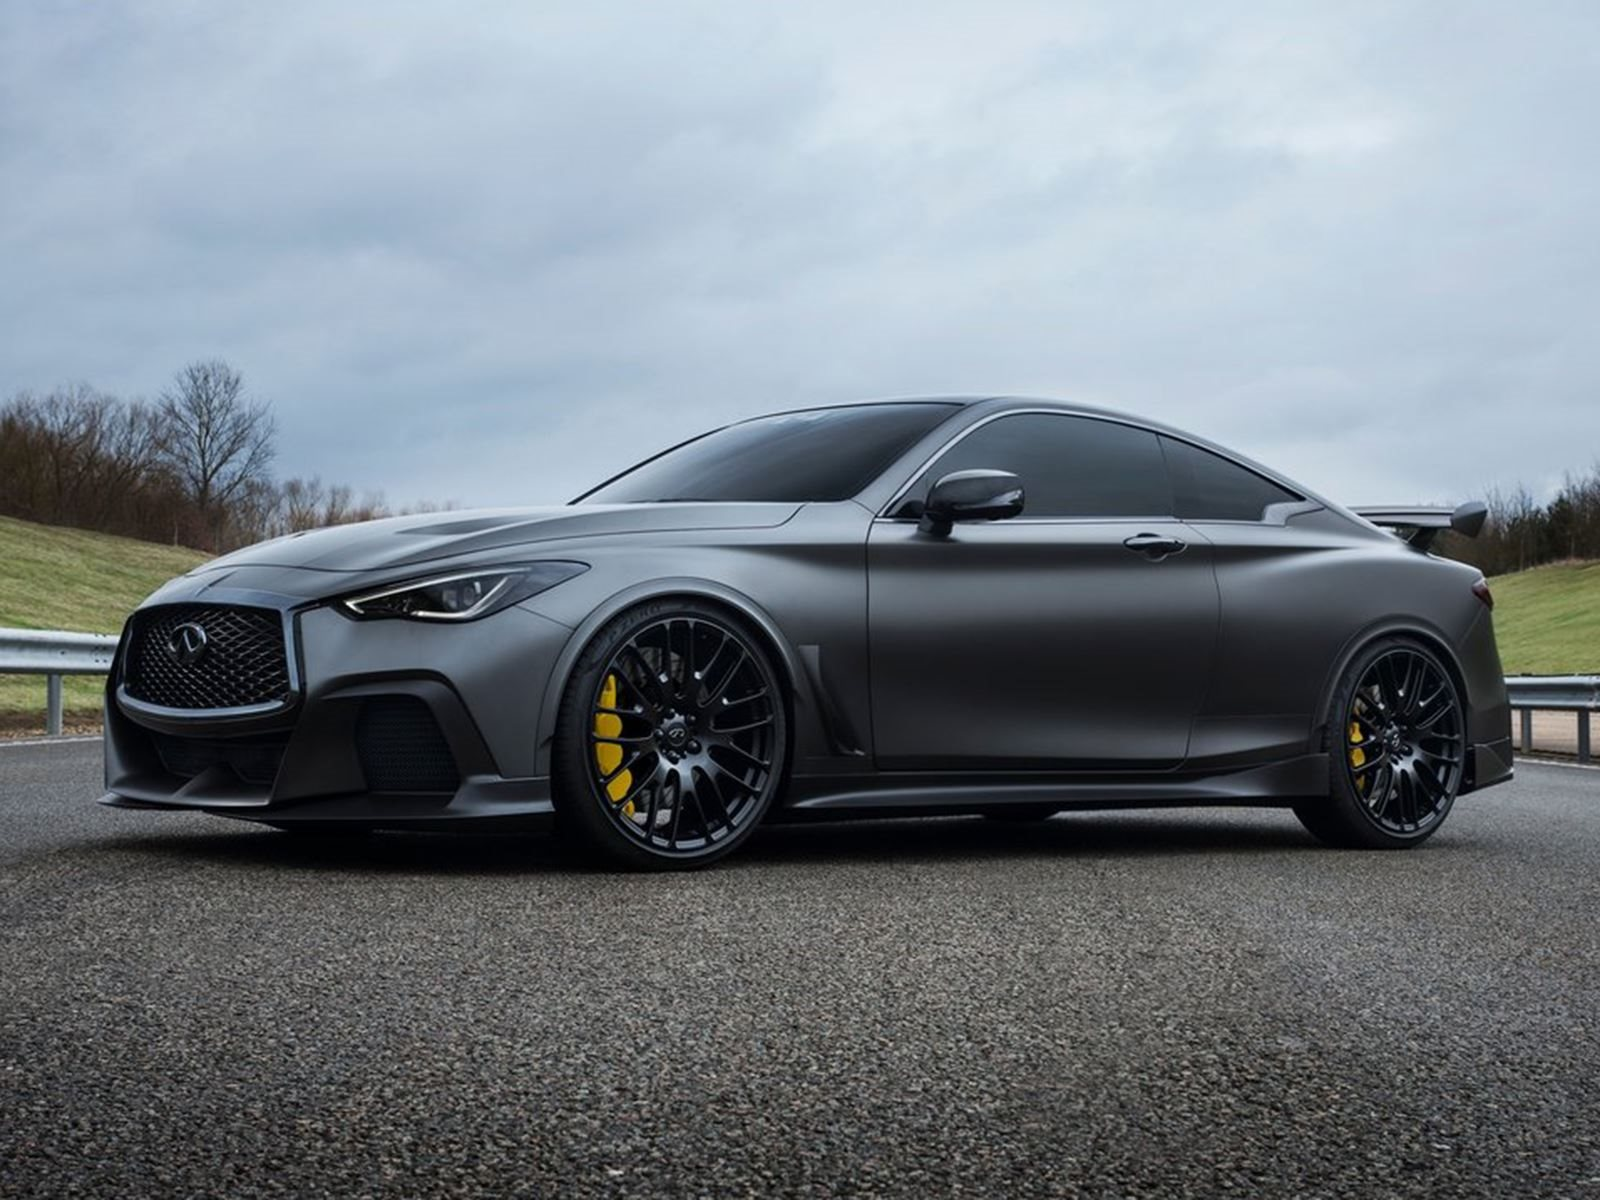 13 New 2020 Infiniti Q60 Coupe Exterior and Interior